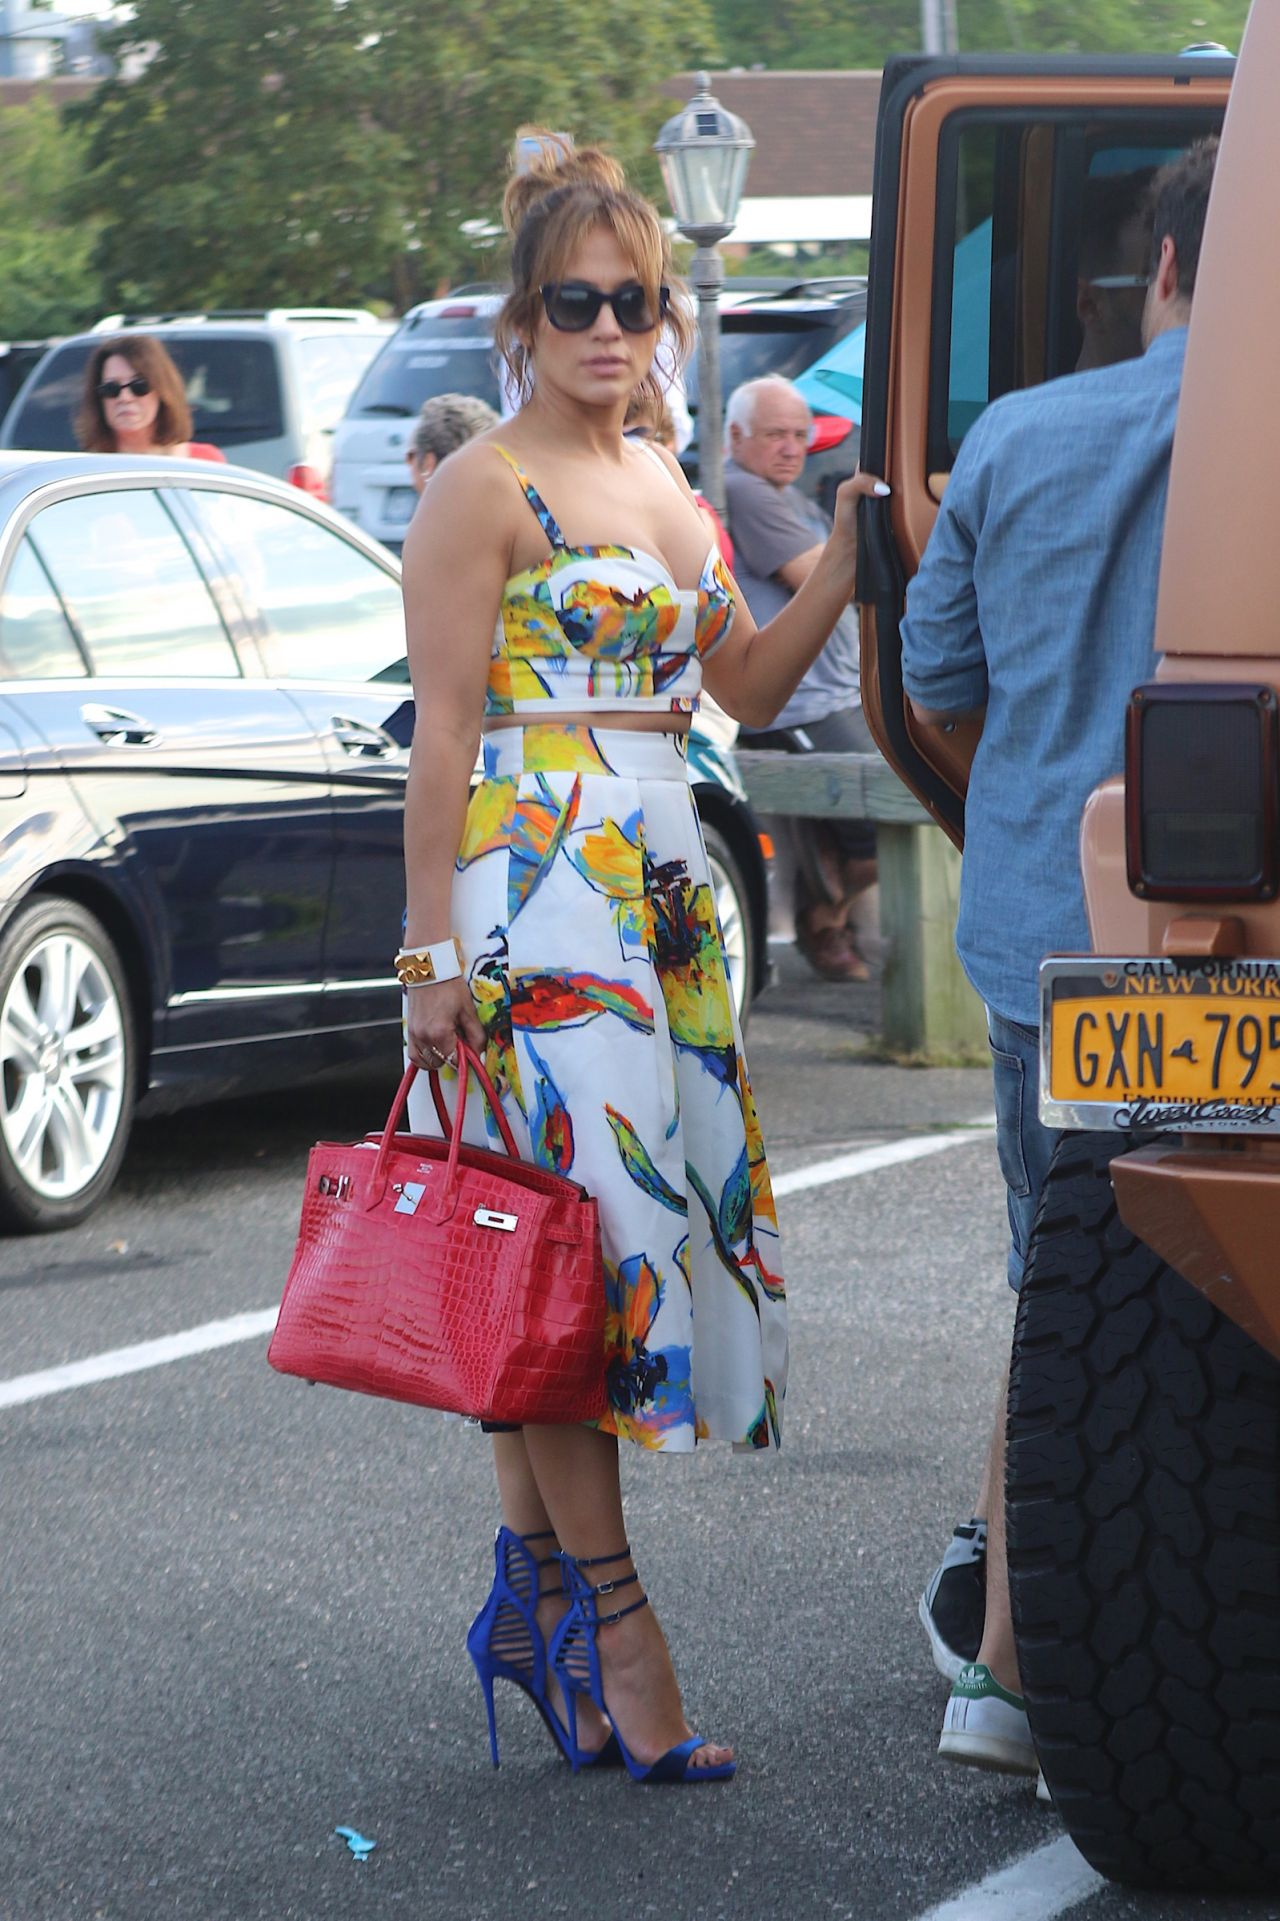 jennifer-lopez-with-family-in-sag-harbor-on-private-yacht-utopia-3-ny-july-2015-_8